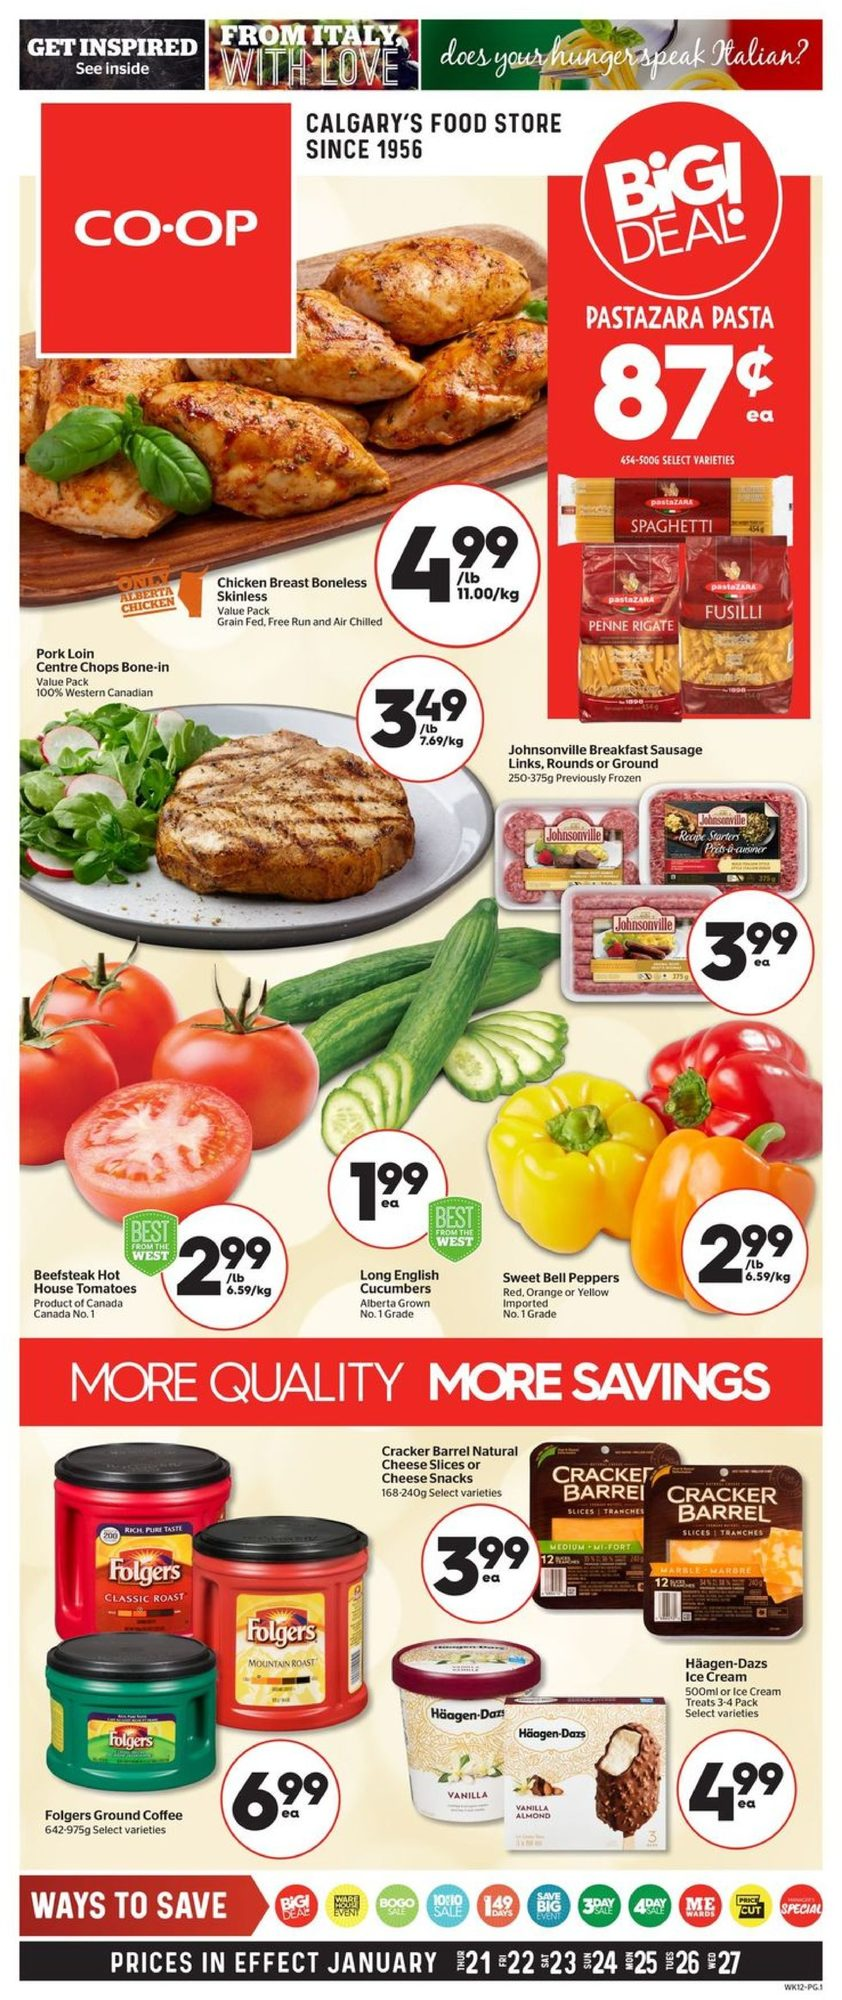 Calgary Co-op - Weekly Flyer Specials